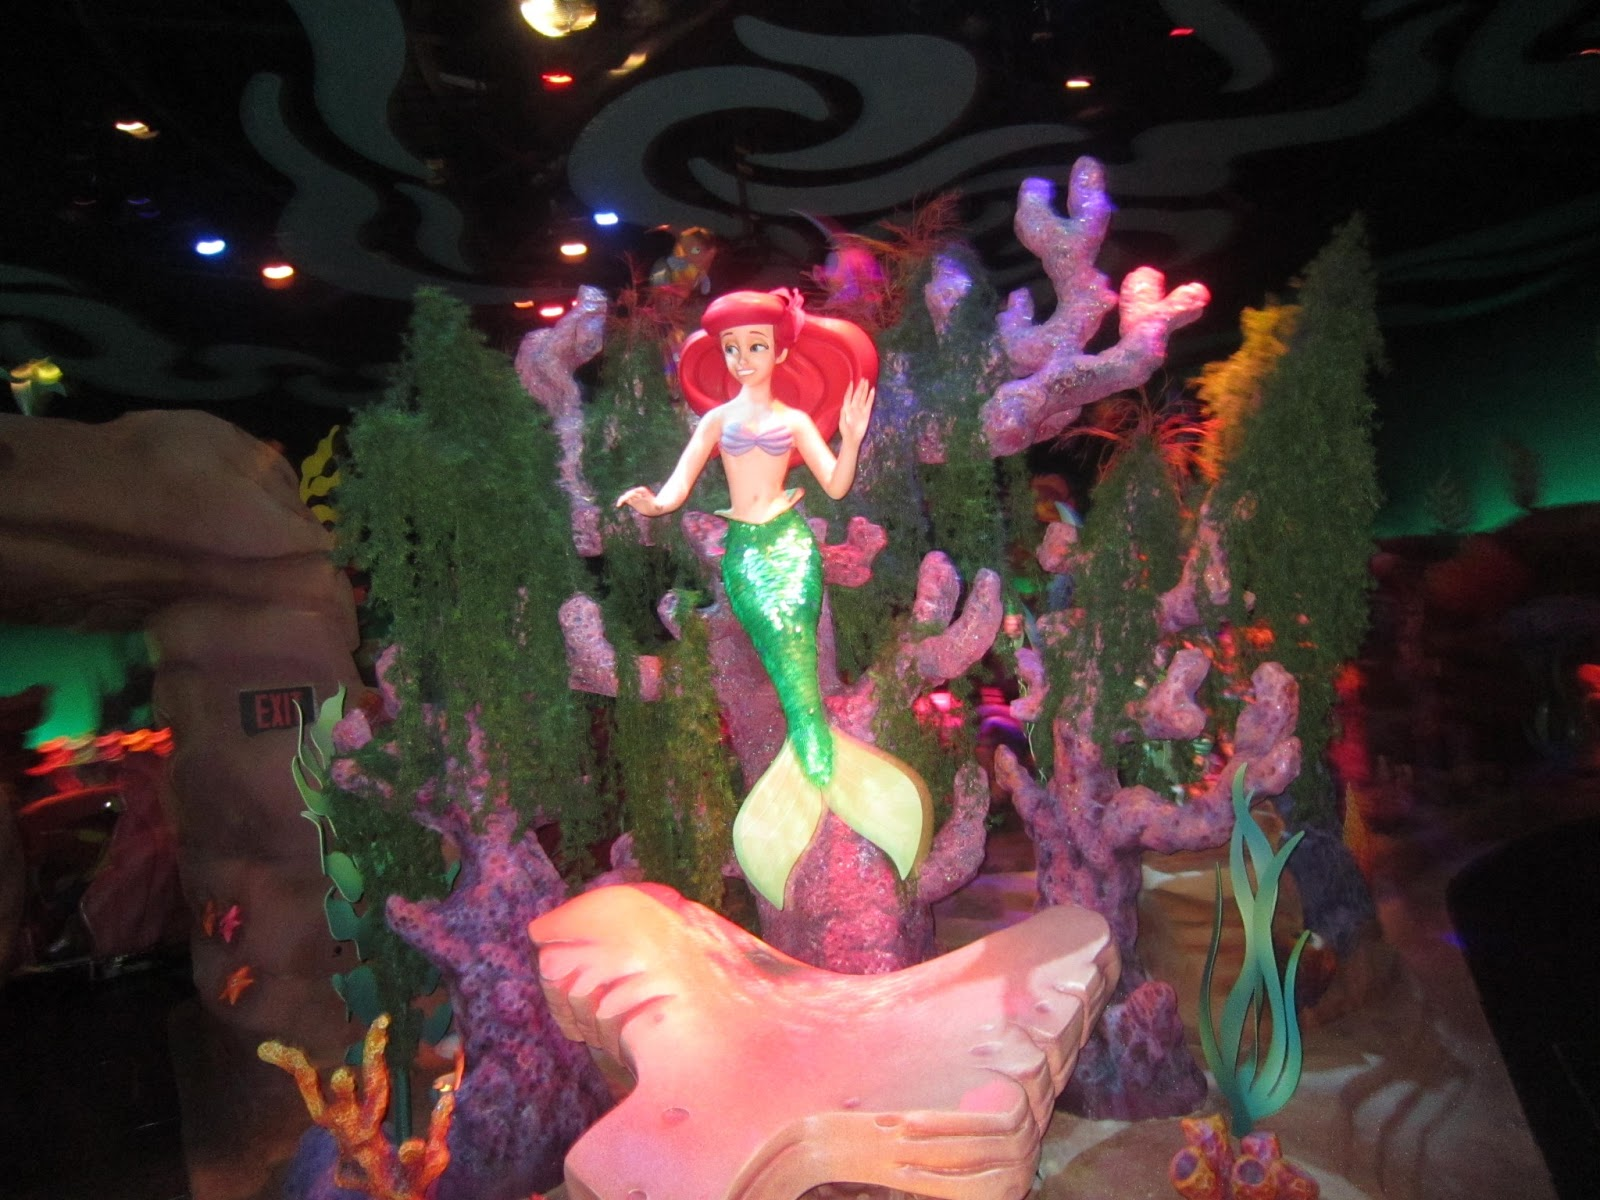 Magic Kingdom, Walt Disney World, Ariel, The Little Mermaid, Orlando, Florida, rides, family vacation